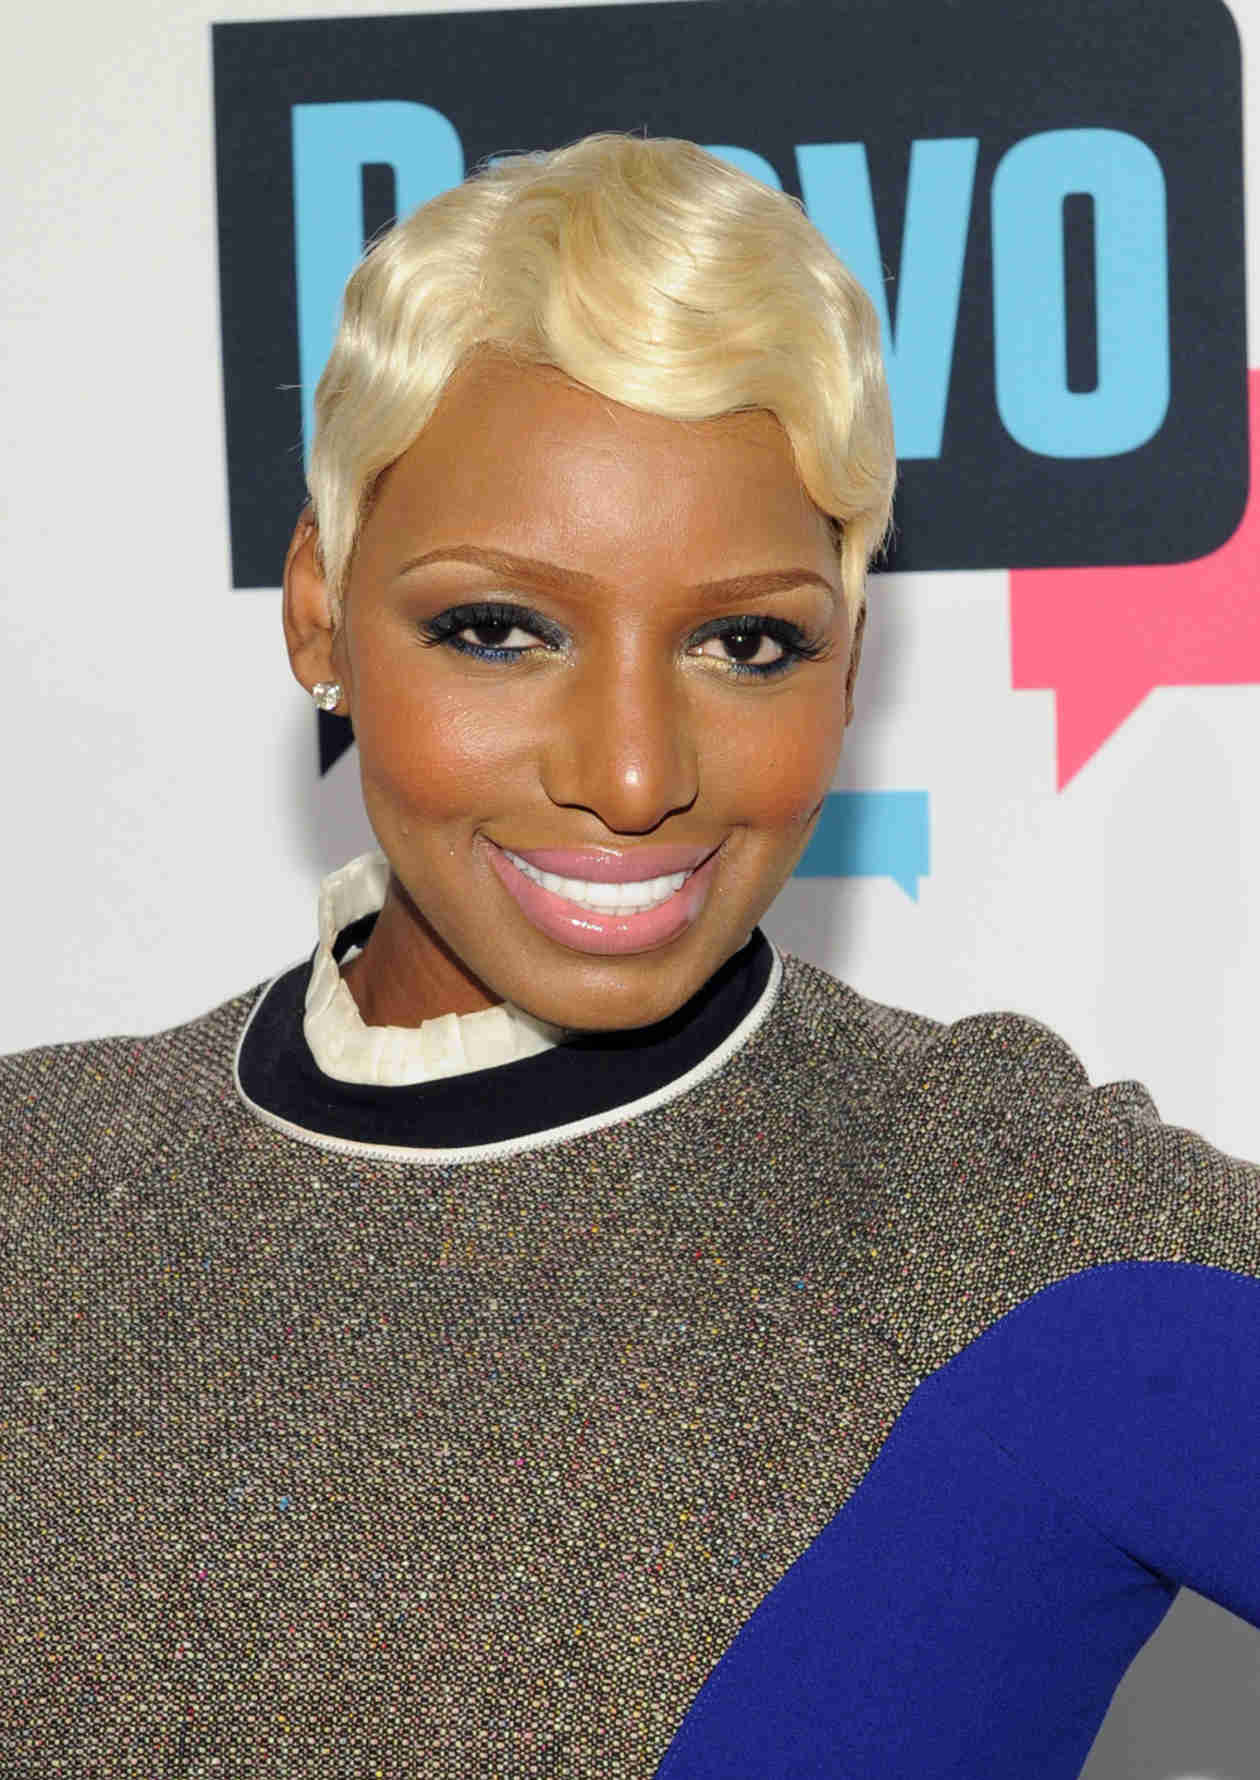 Dancing With the Stars 2014: Are You Happy NeNe Leakes Was Cast?